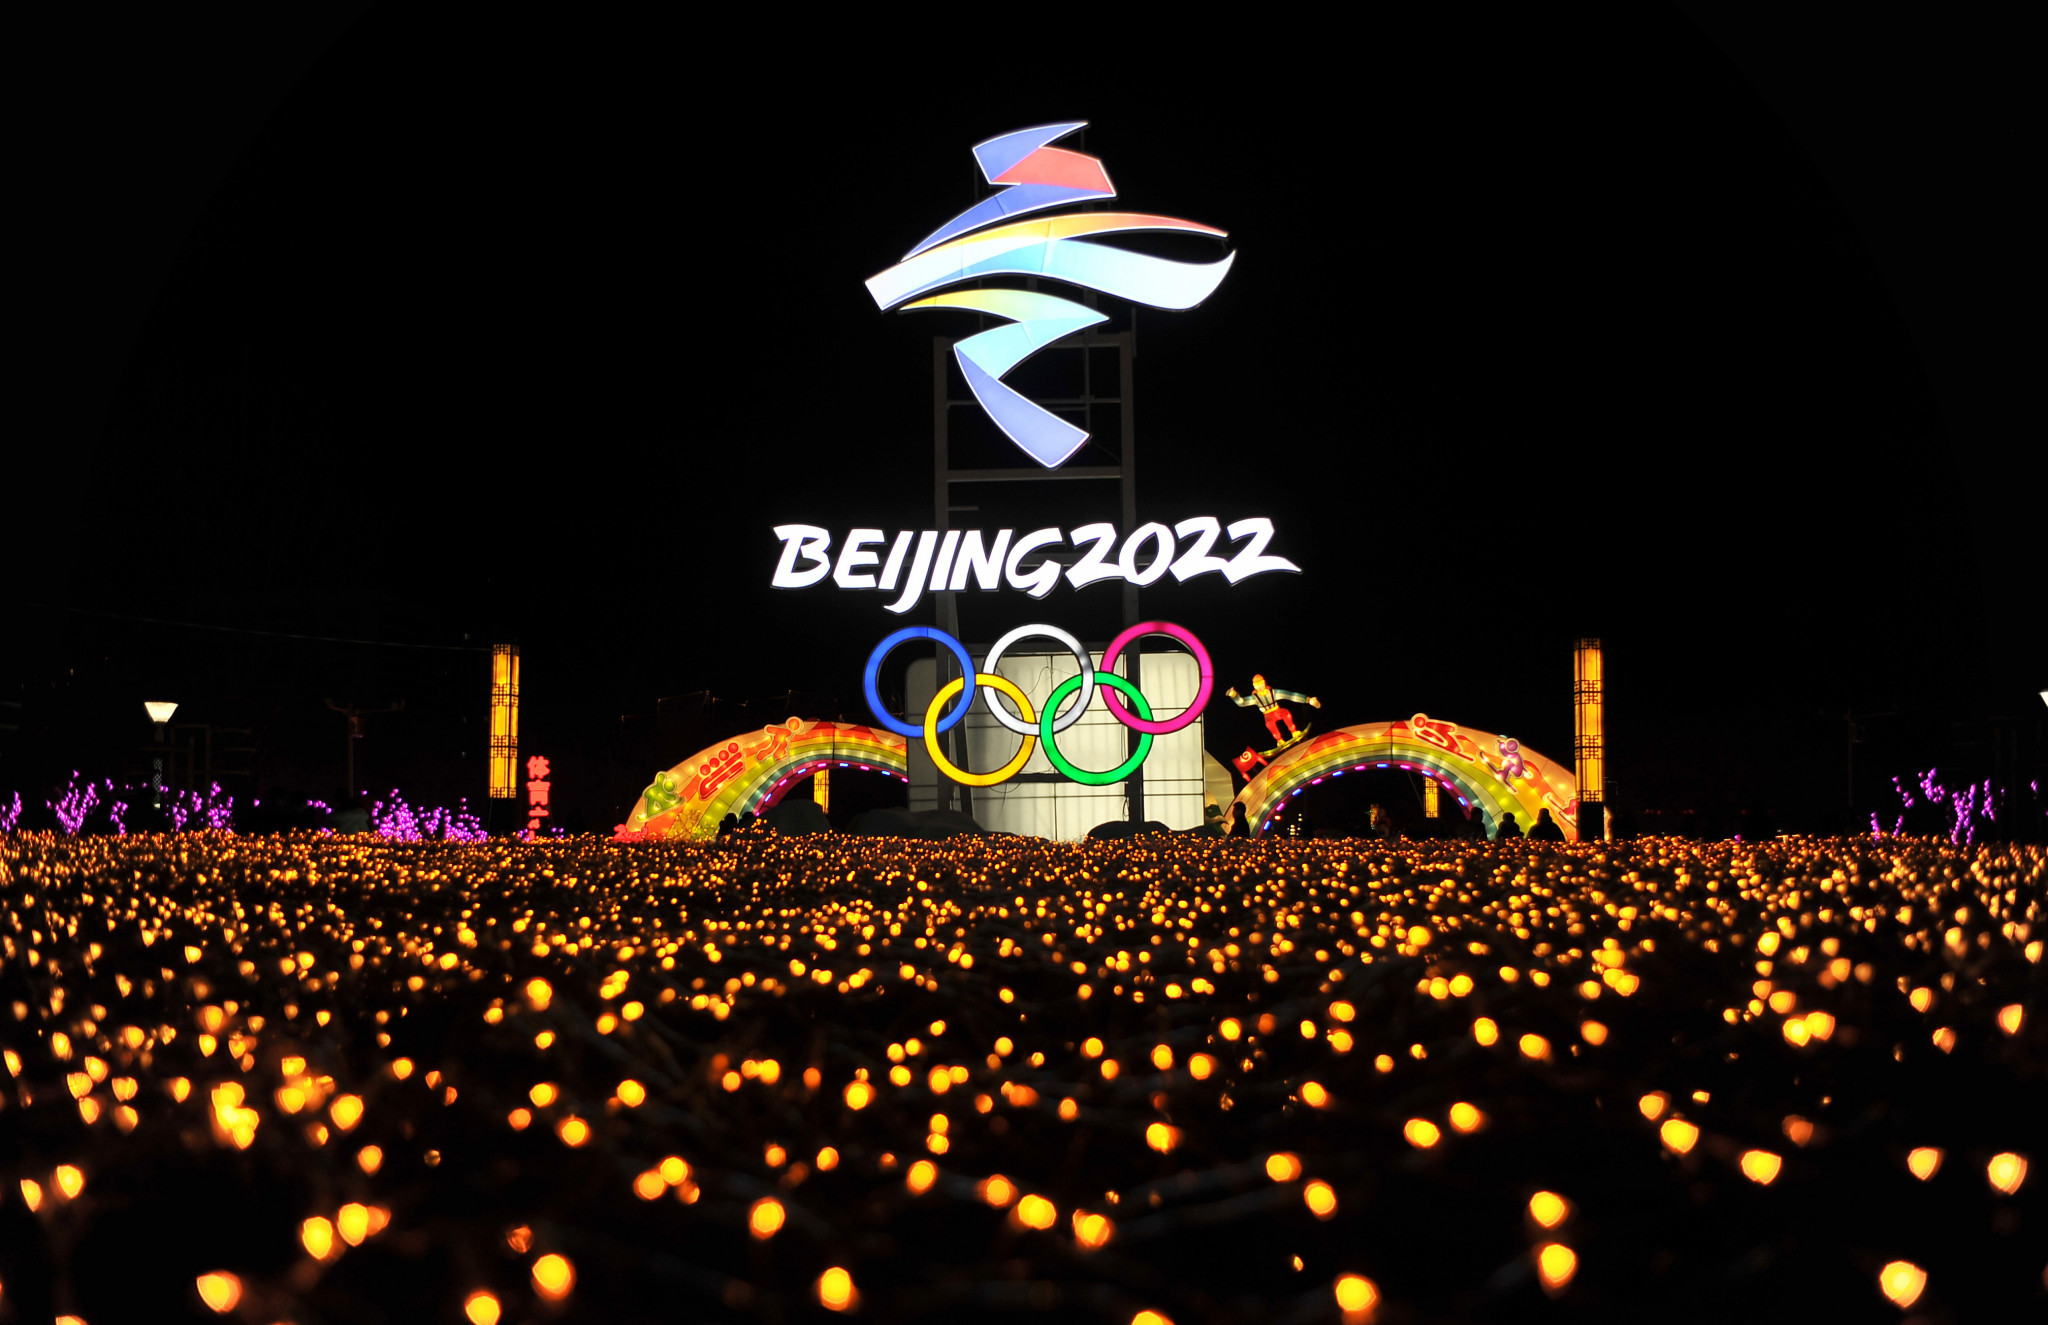 Beijing is set to host the next edition of the Winter Olympic and Paralympic Games in four years' time ©Getty Images